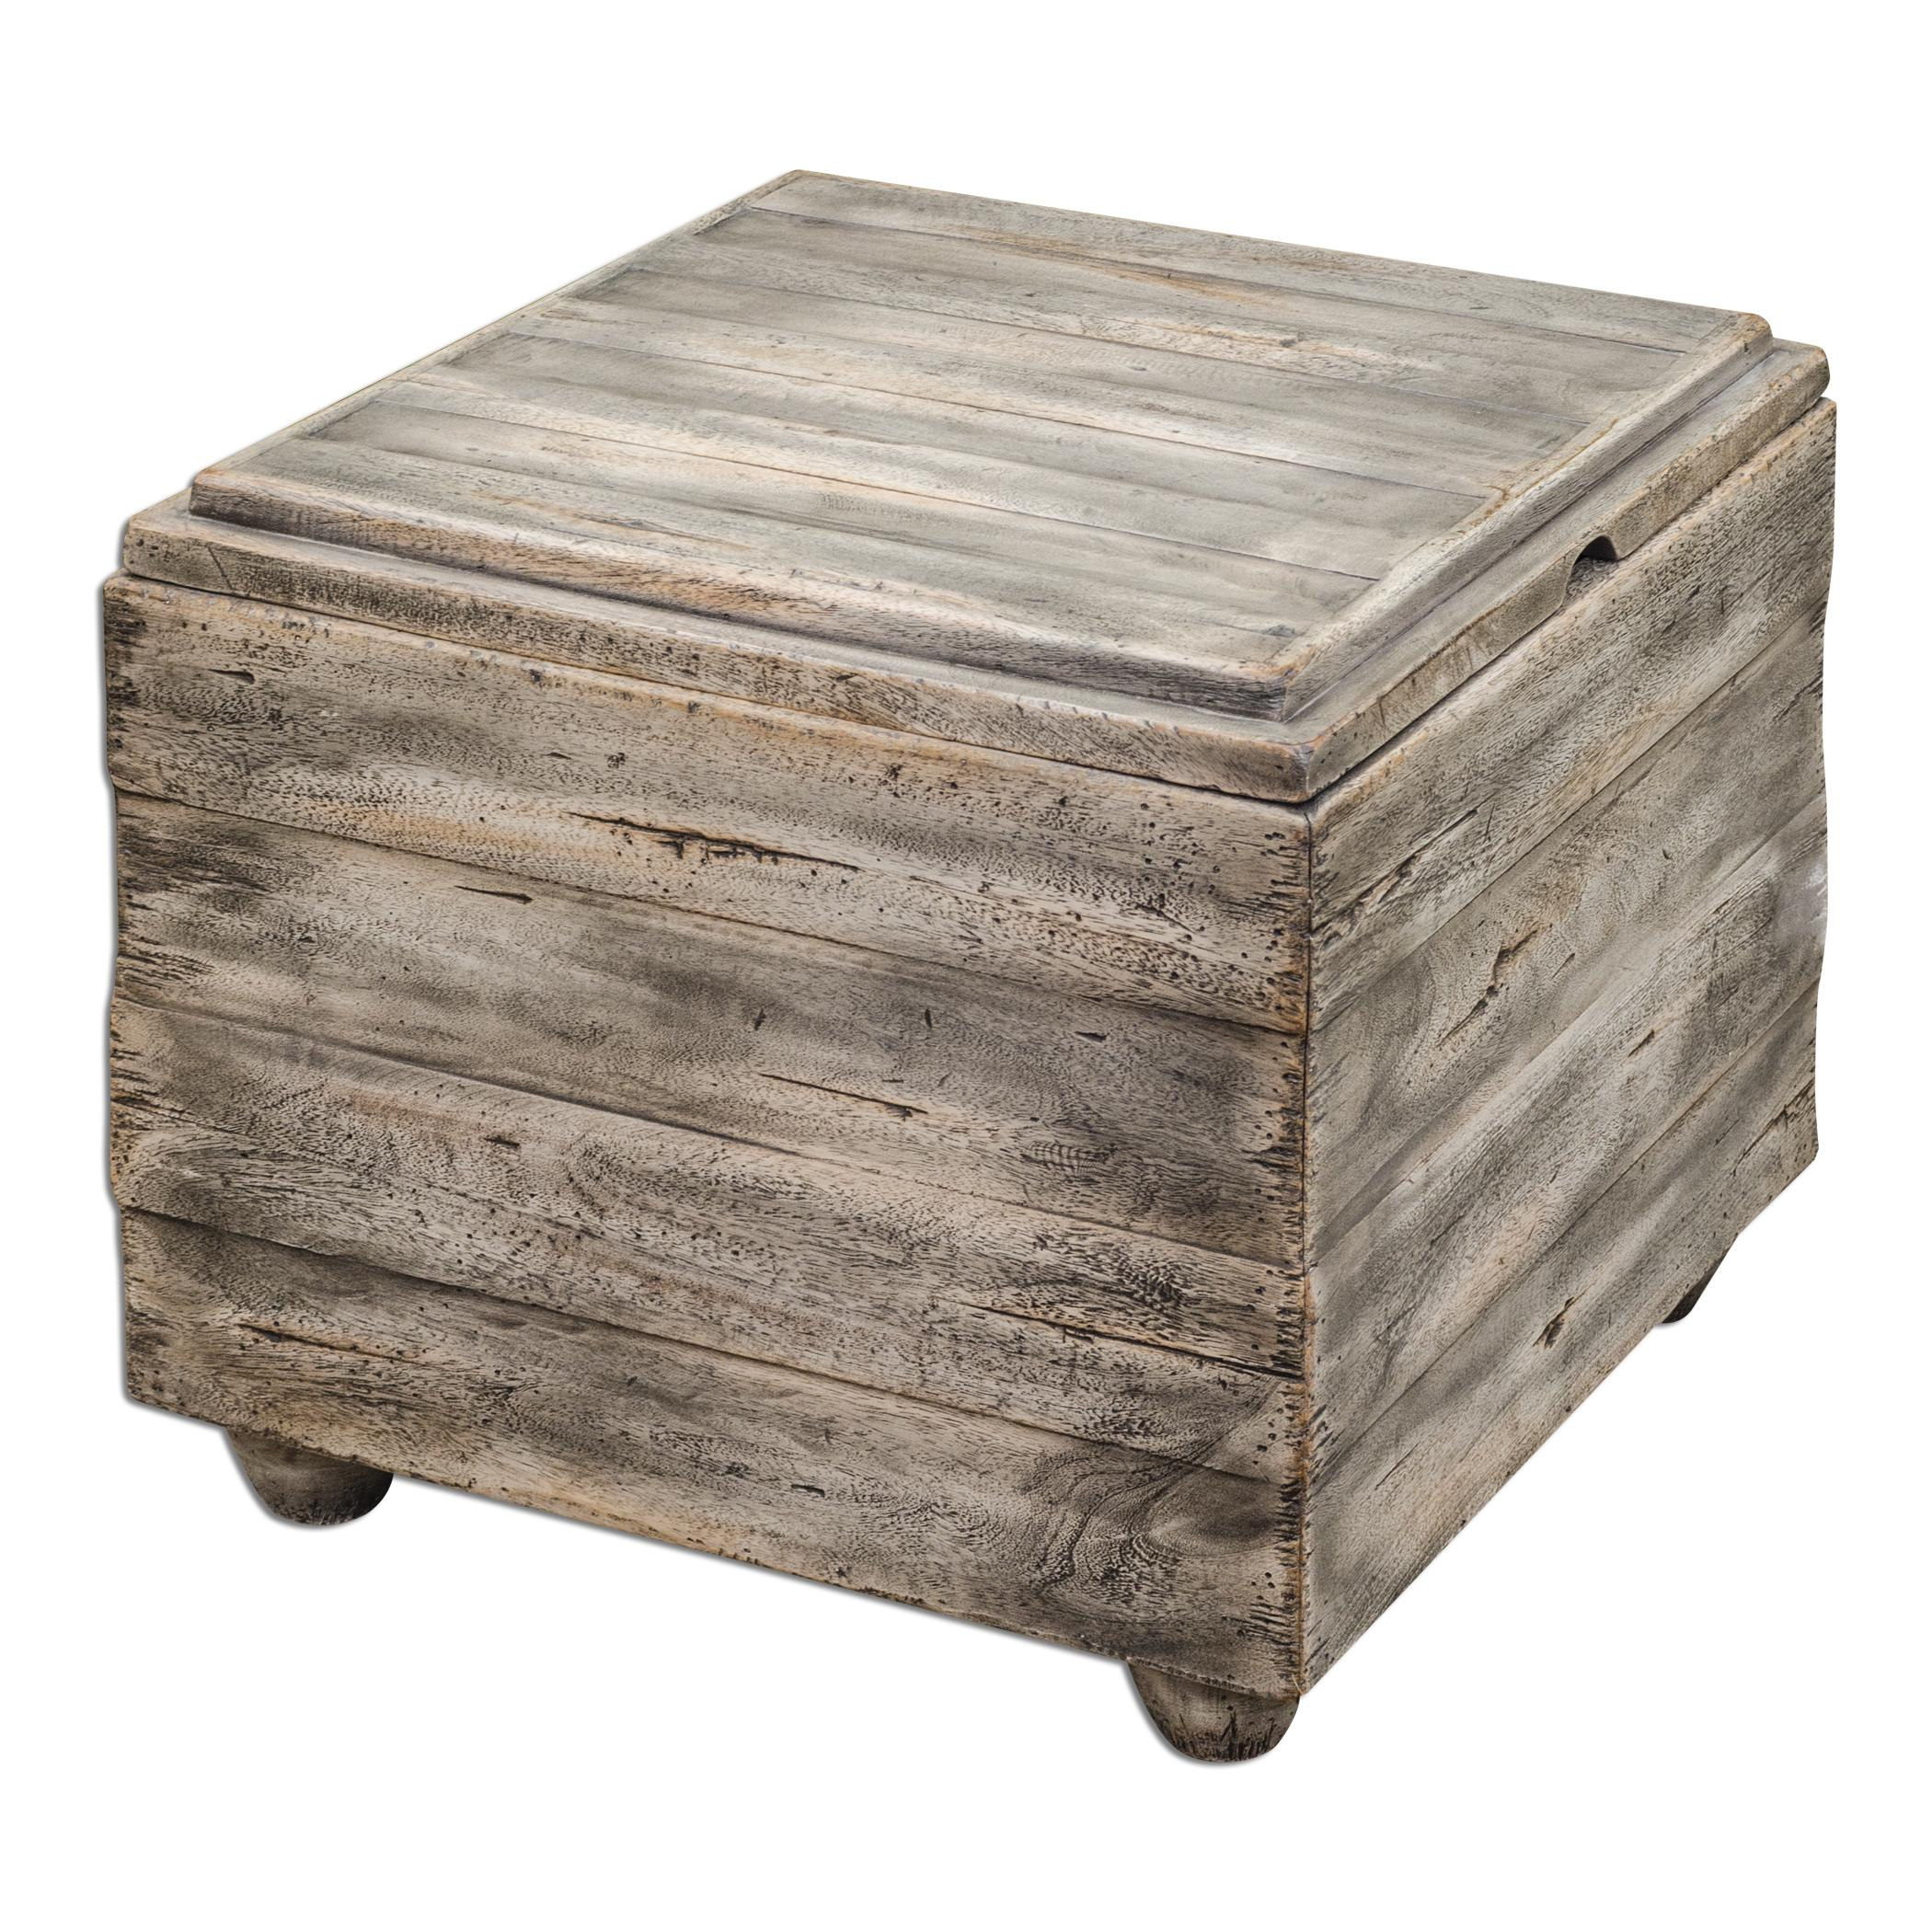 Accent Furniture - Occasional Tables Avner Wooden Cube Table by Uttermost at Reid's Furniture